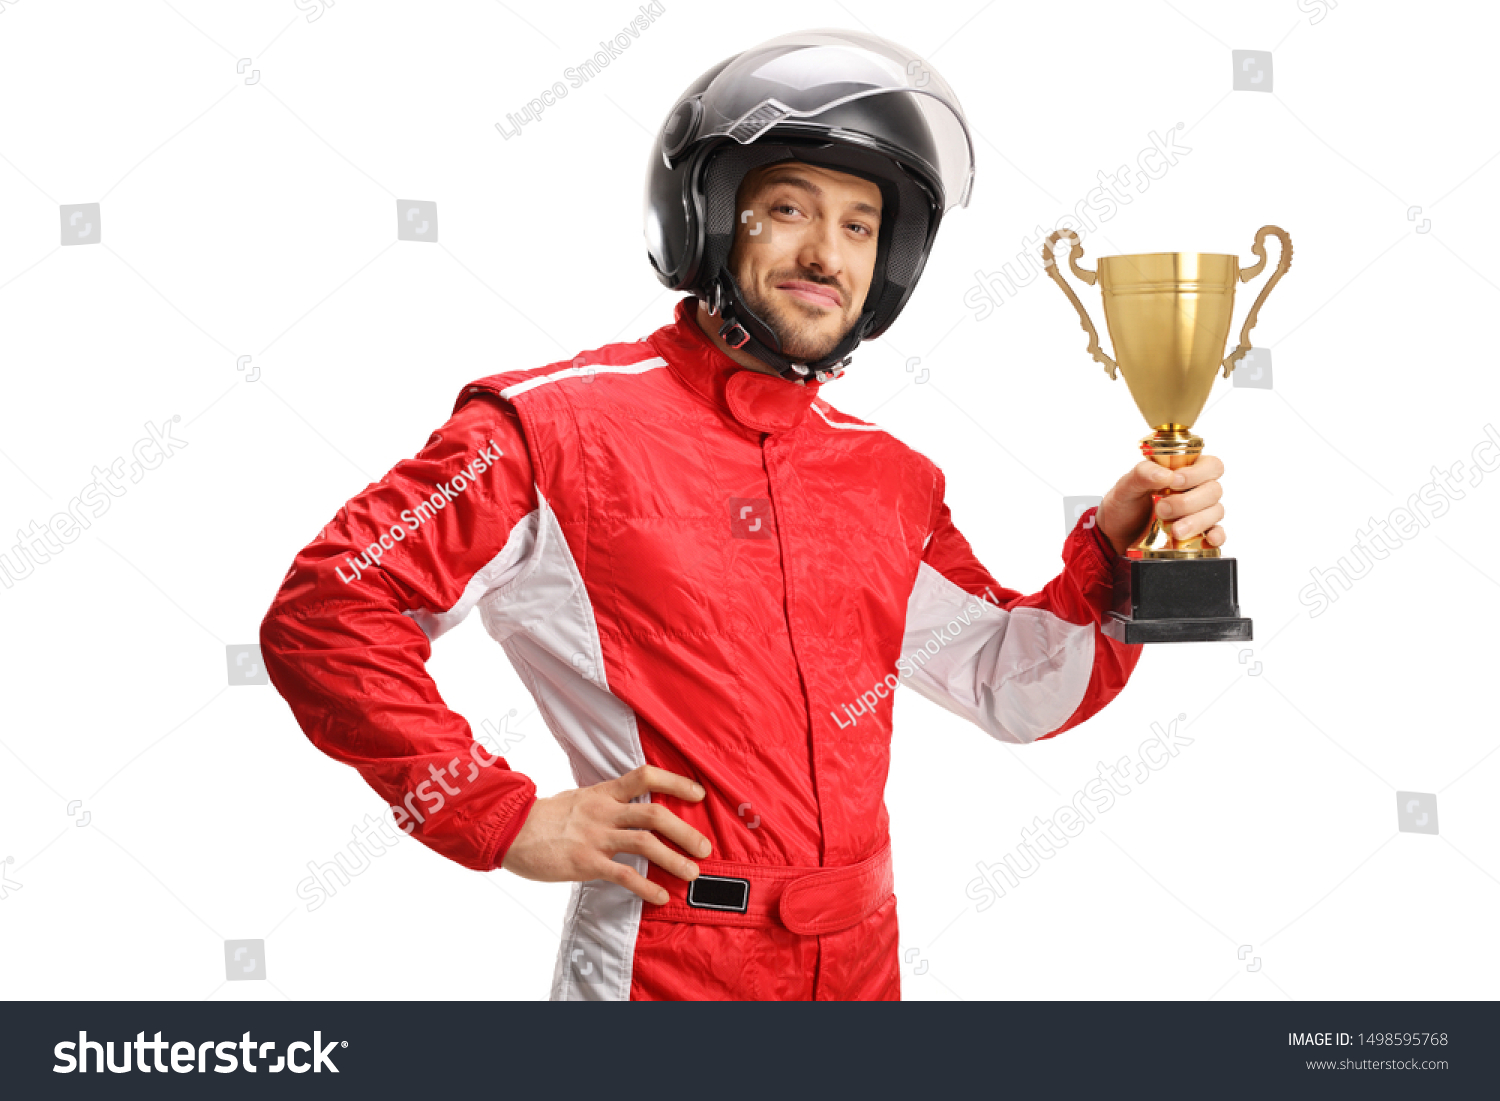 Racer with a helmet holding a gold trophy cup isolated on white background #1498595768